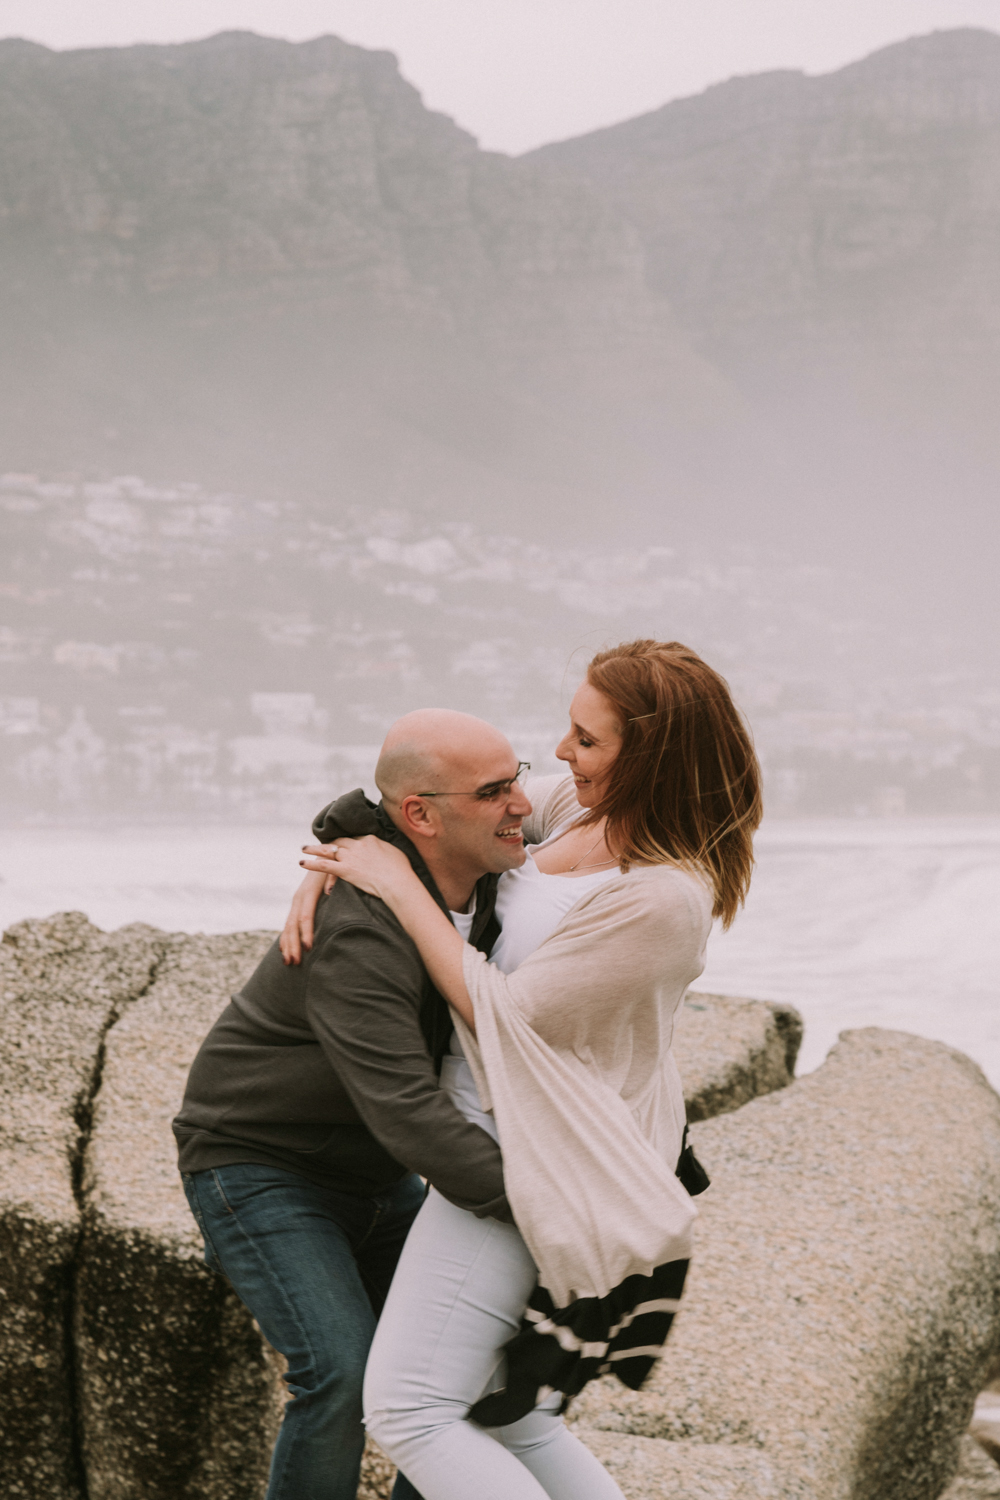 Enagagement photography Cape Town- Bianca Asher Photography-9.jpg